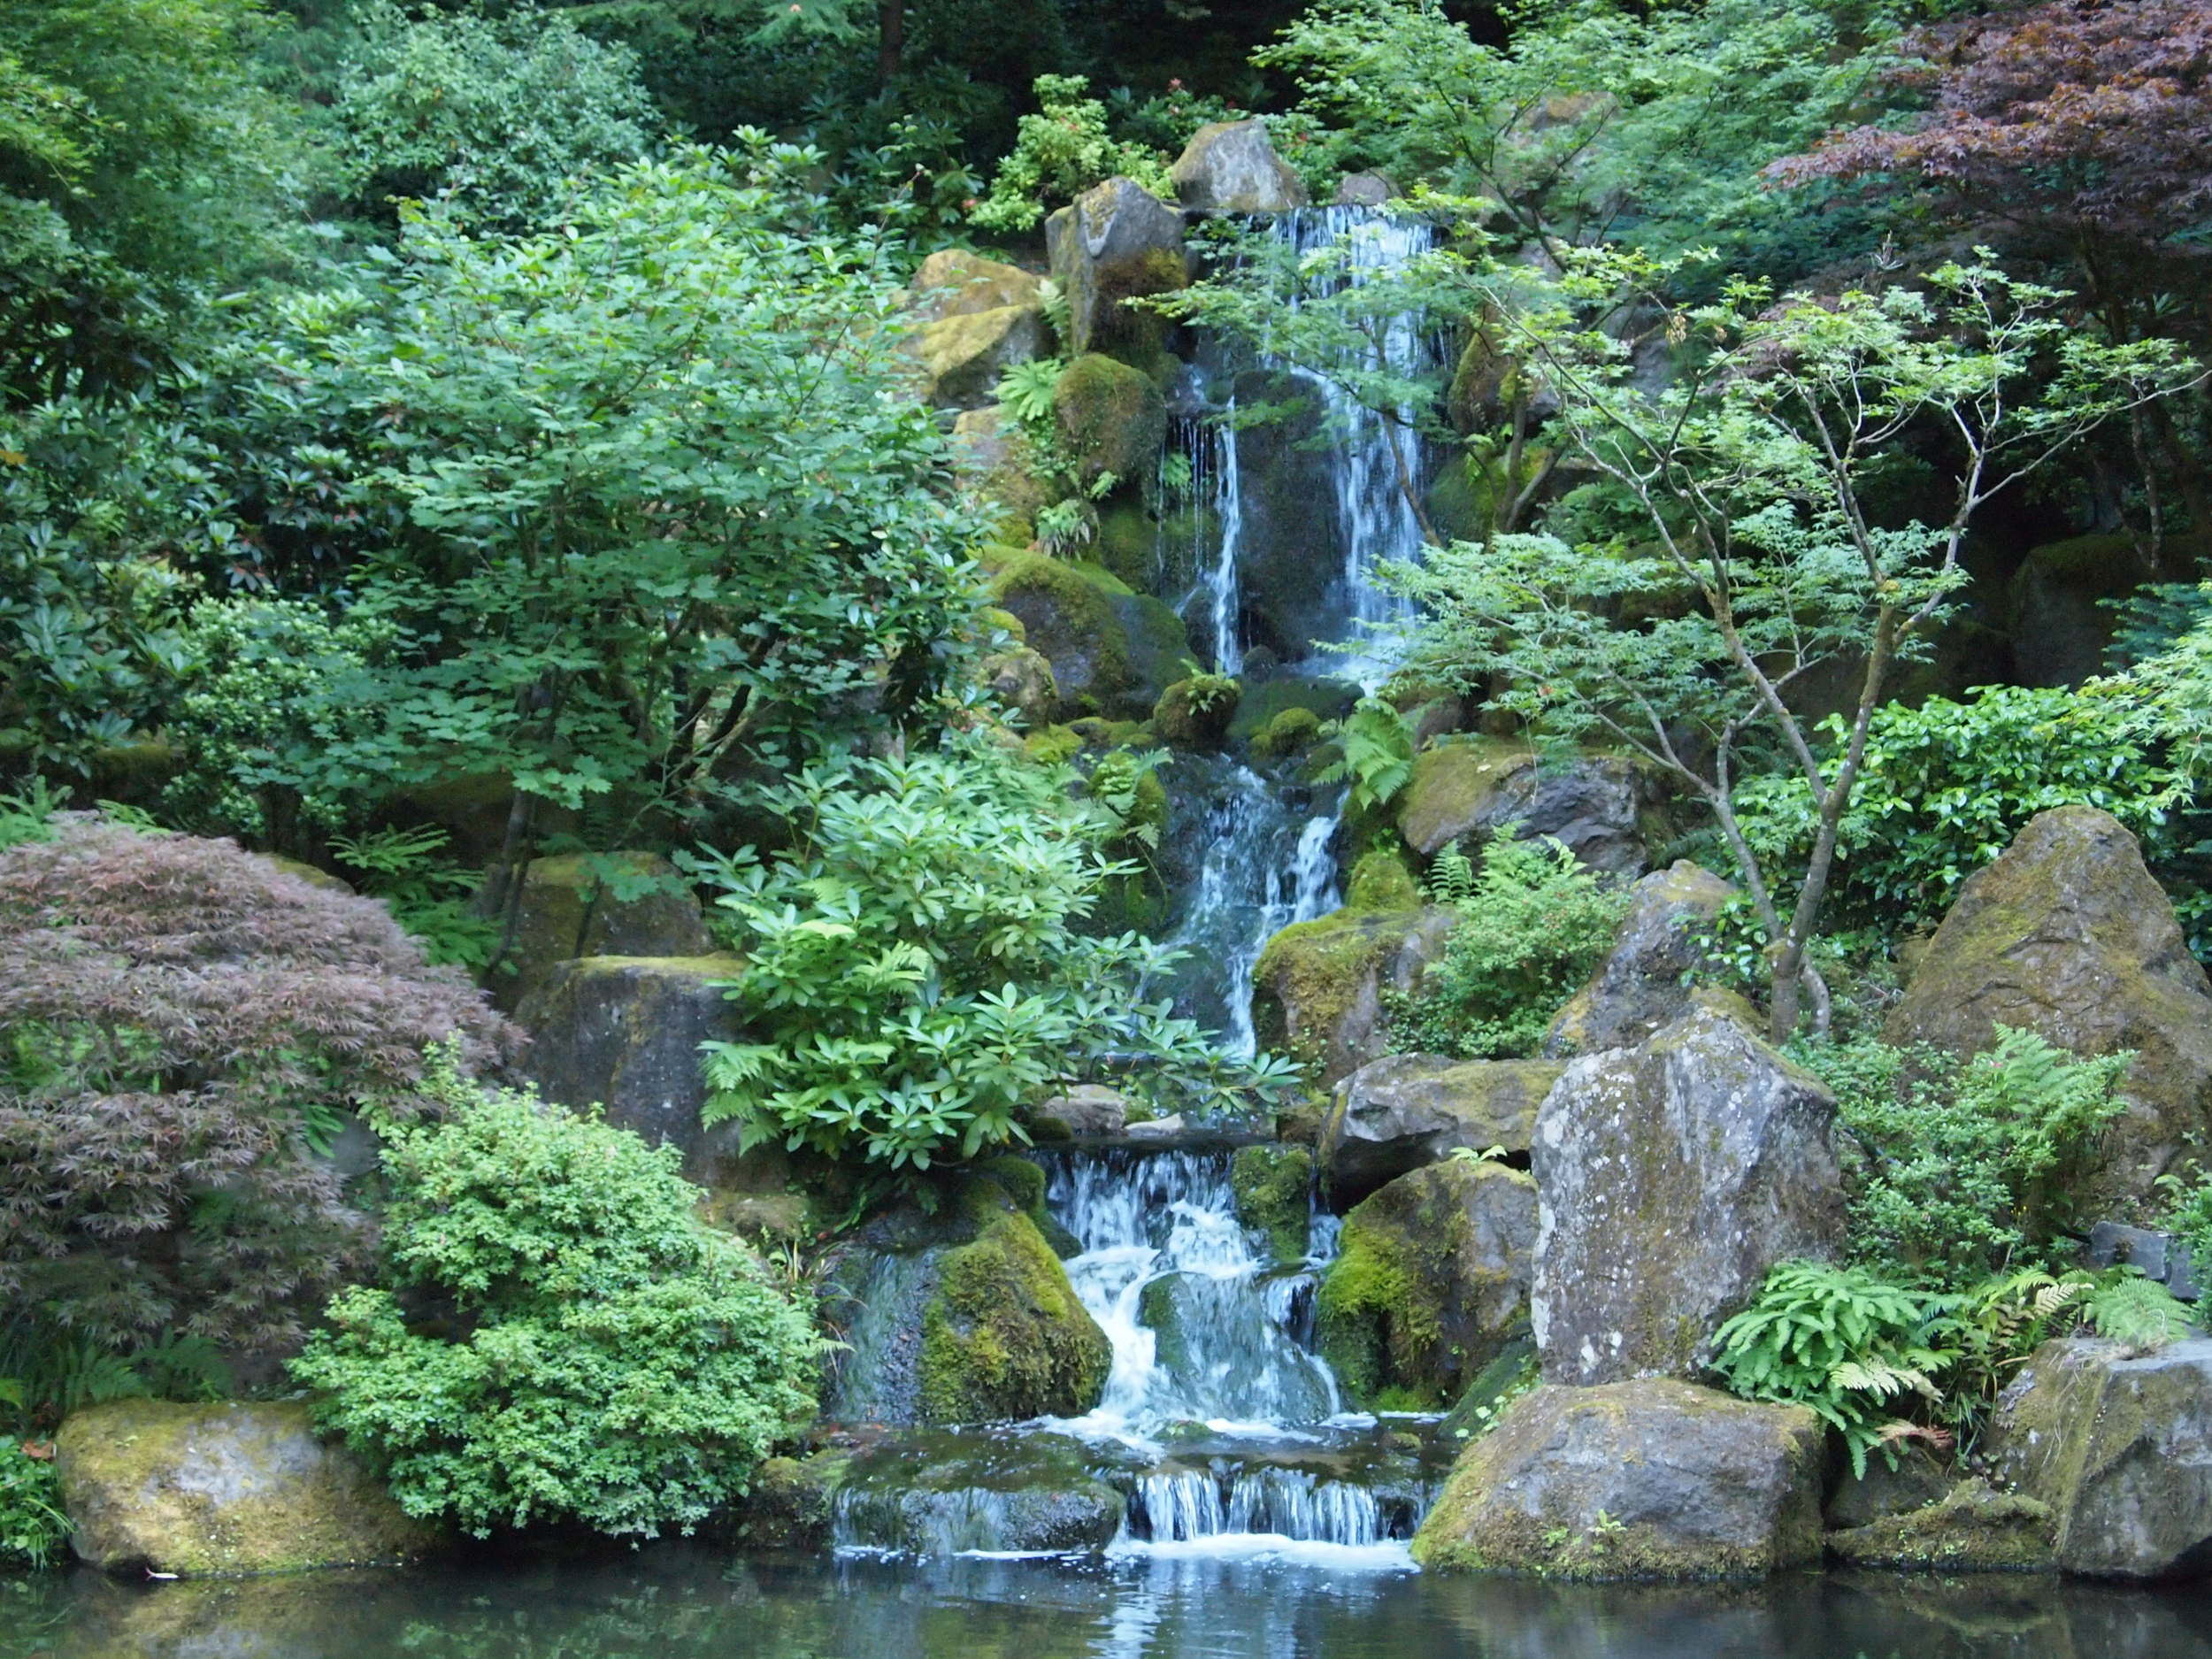 A mindful waterfall, representing using mindfulness to help relieve anxiety